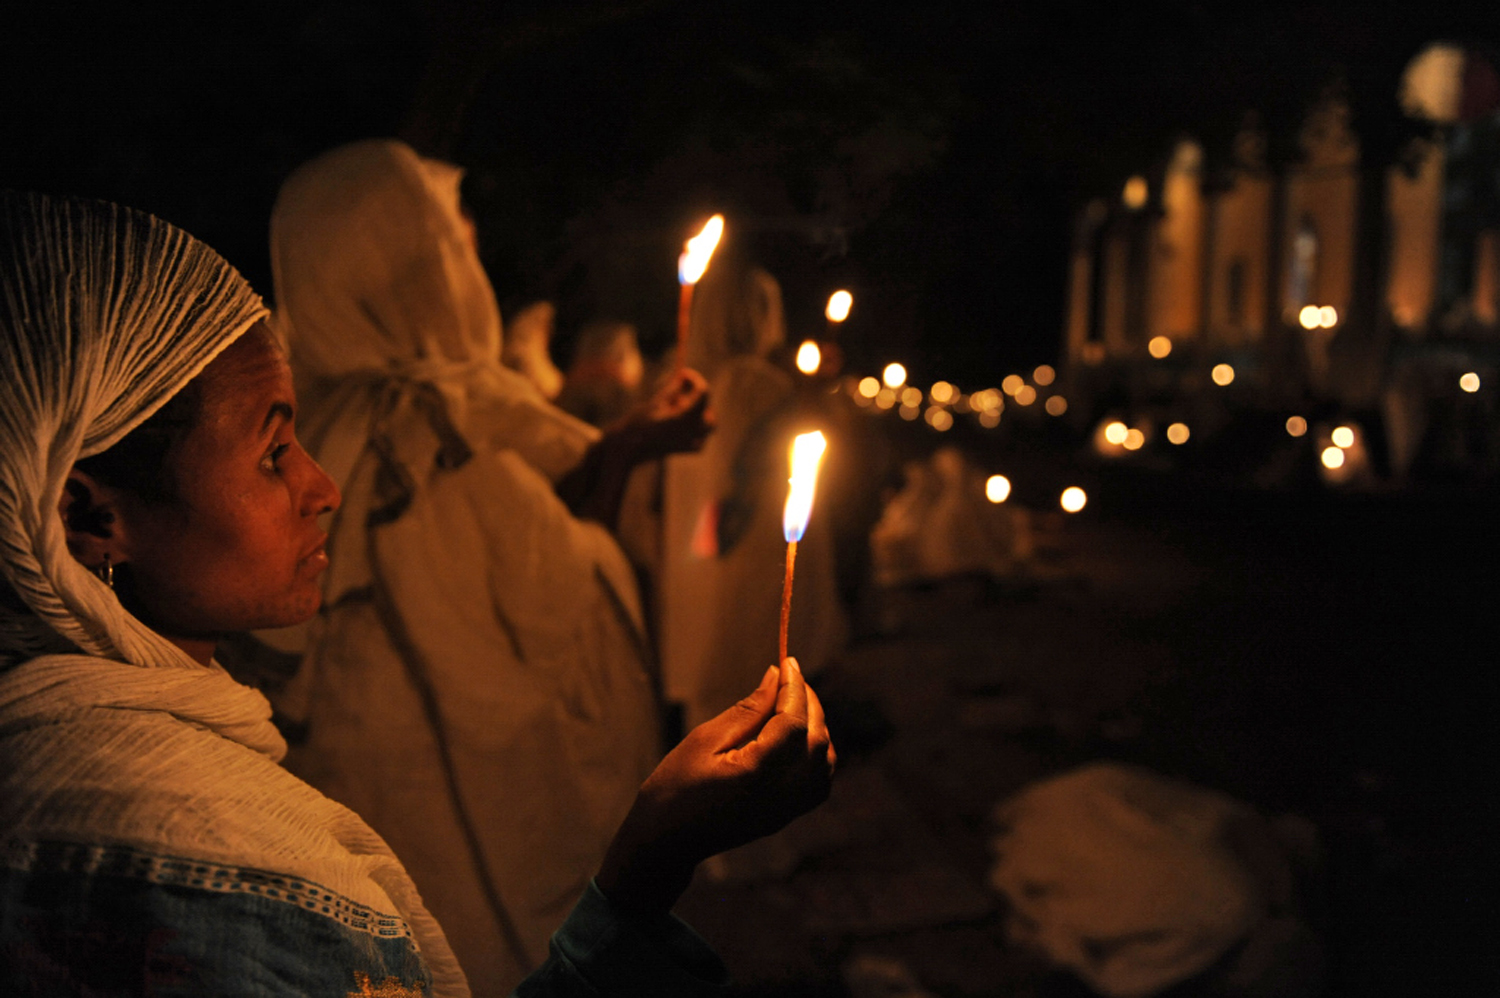 Orthodox Christians celebrate Easter during a  night long service at St Georges Church Bahir Dar, Ethiopia. Easter Sunday fell on April 8, 2012, while the Orthodox Christians celebrated the day on 15 April